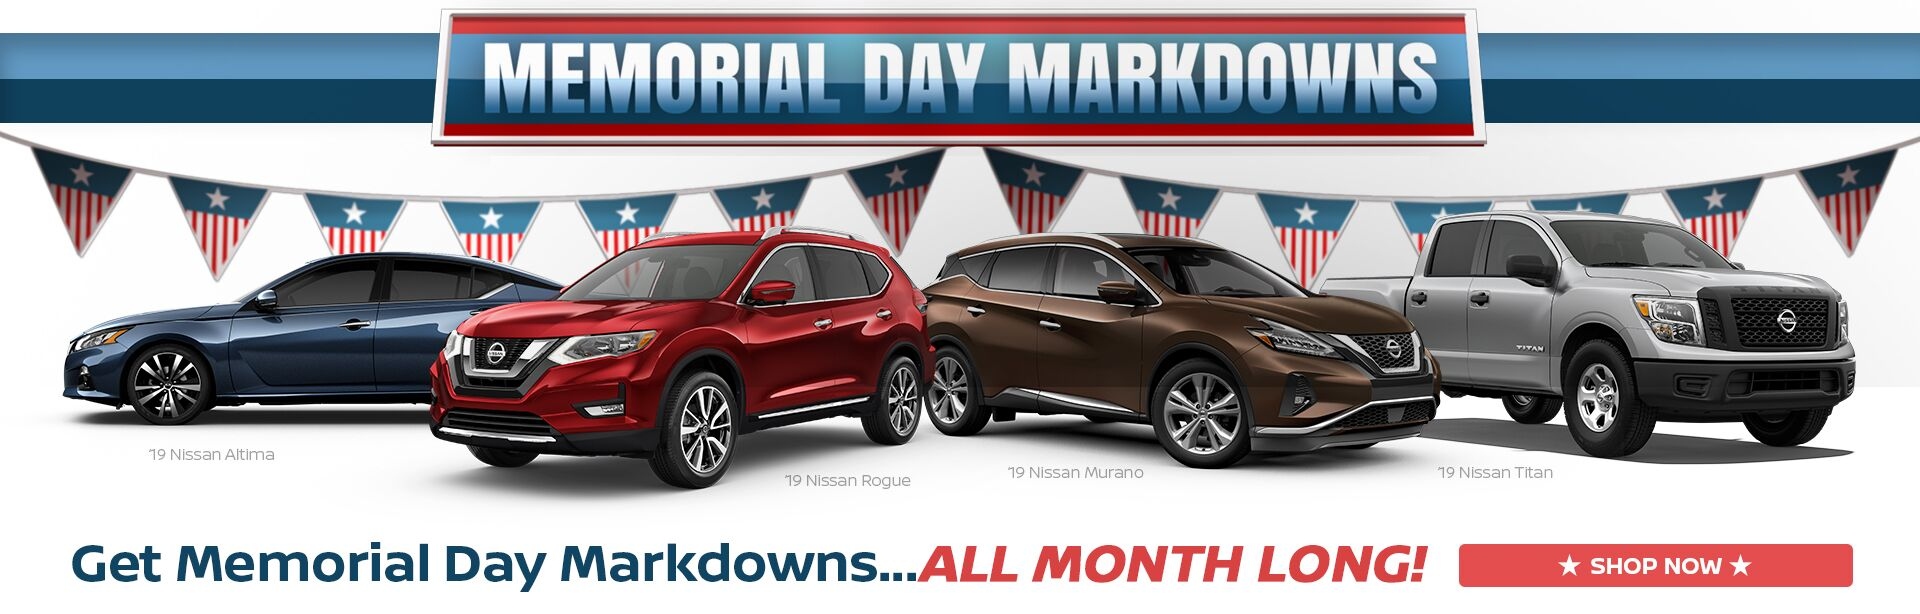 Memorial Day Markdowns